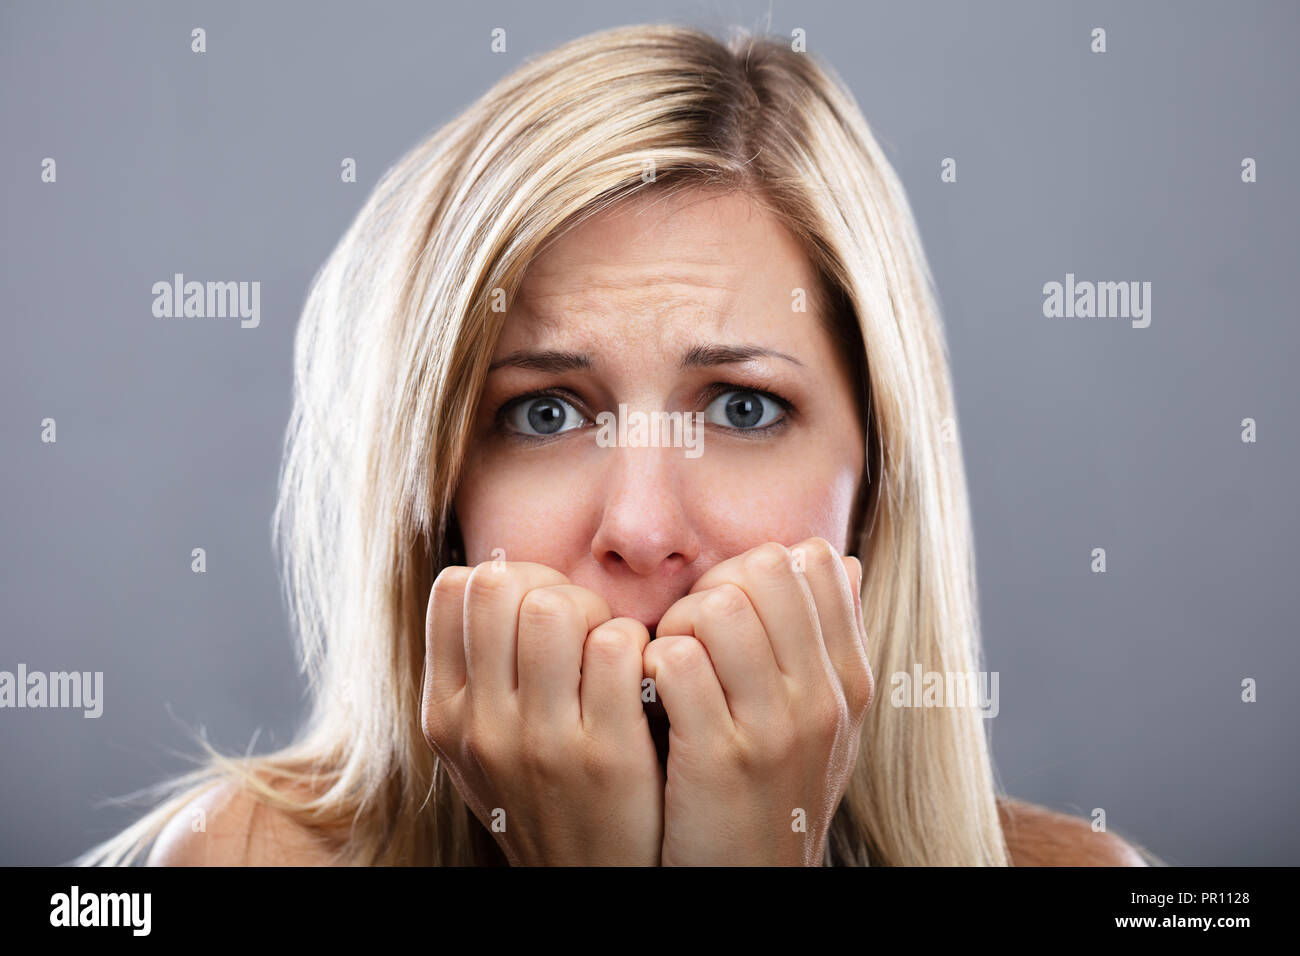 Portrait Of A Scared Young Woman On Grey Background - Stock Image